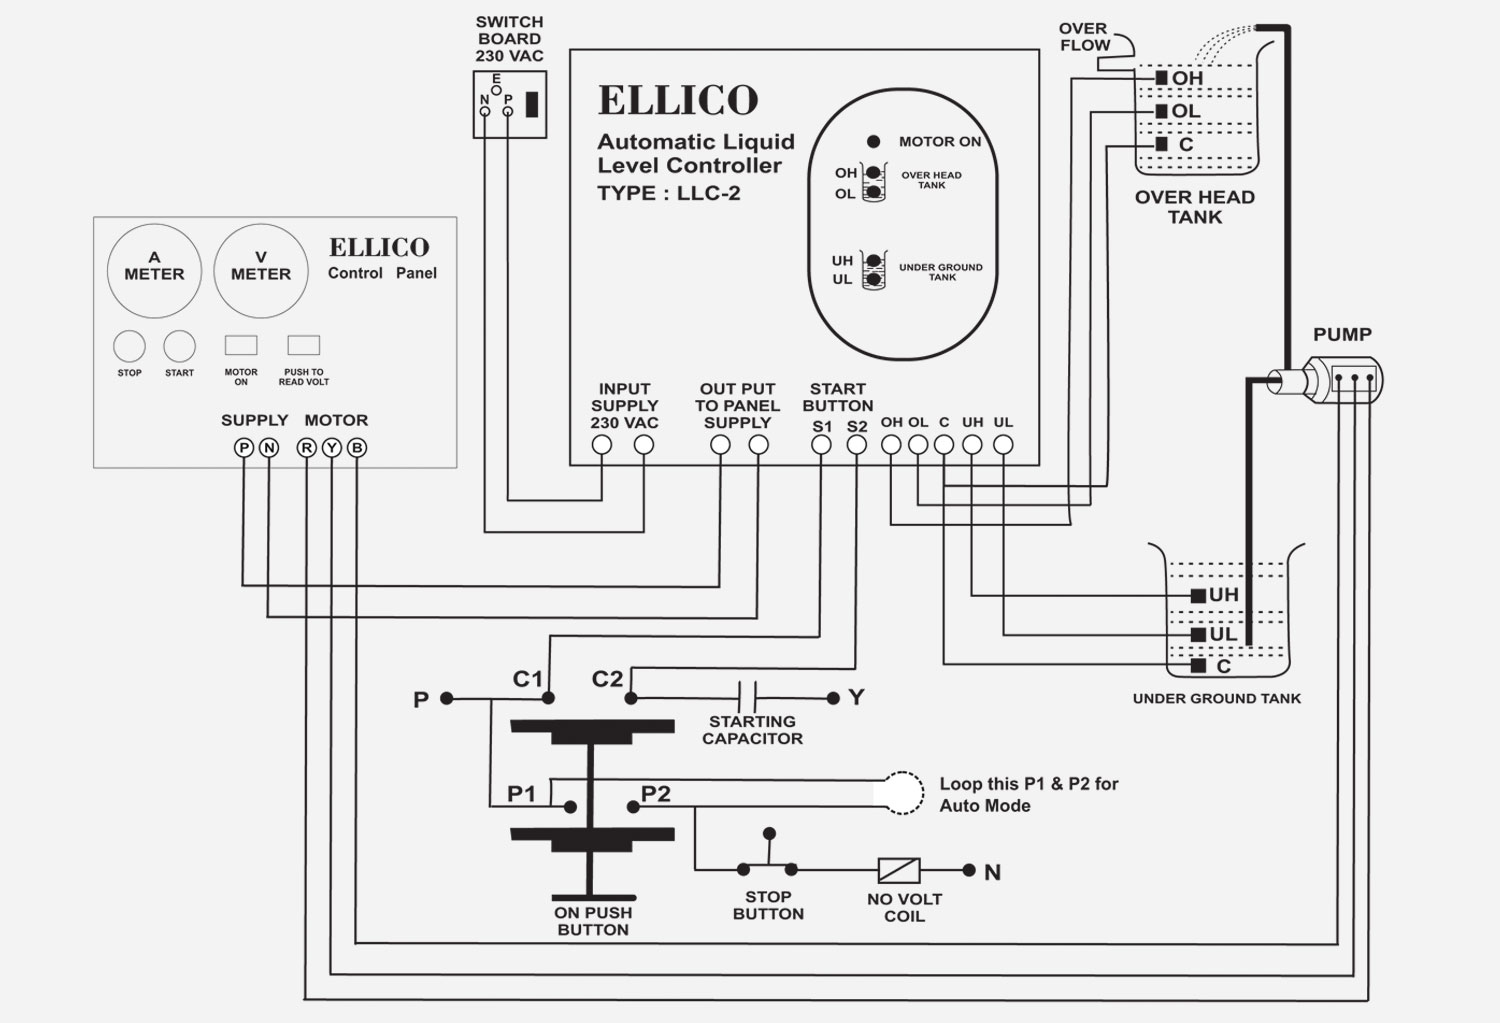 Ellico Water Level Controller Wiring Diagram 44 Liquid Switch Yzj306fnllc 2 At